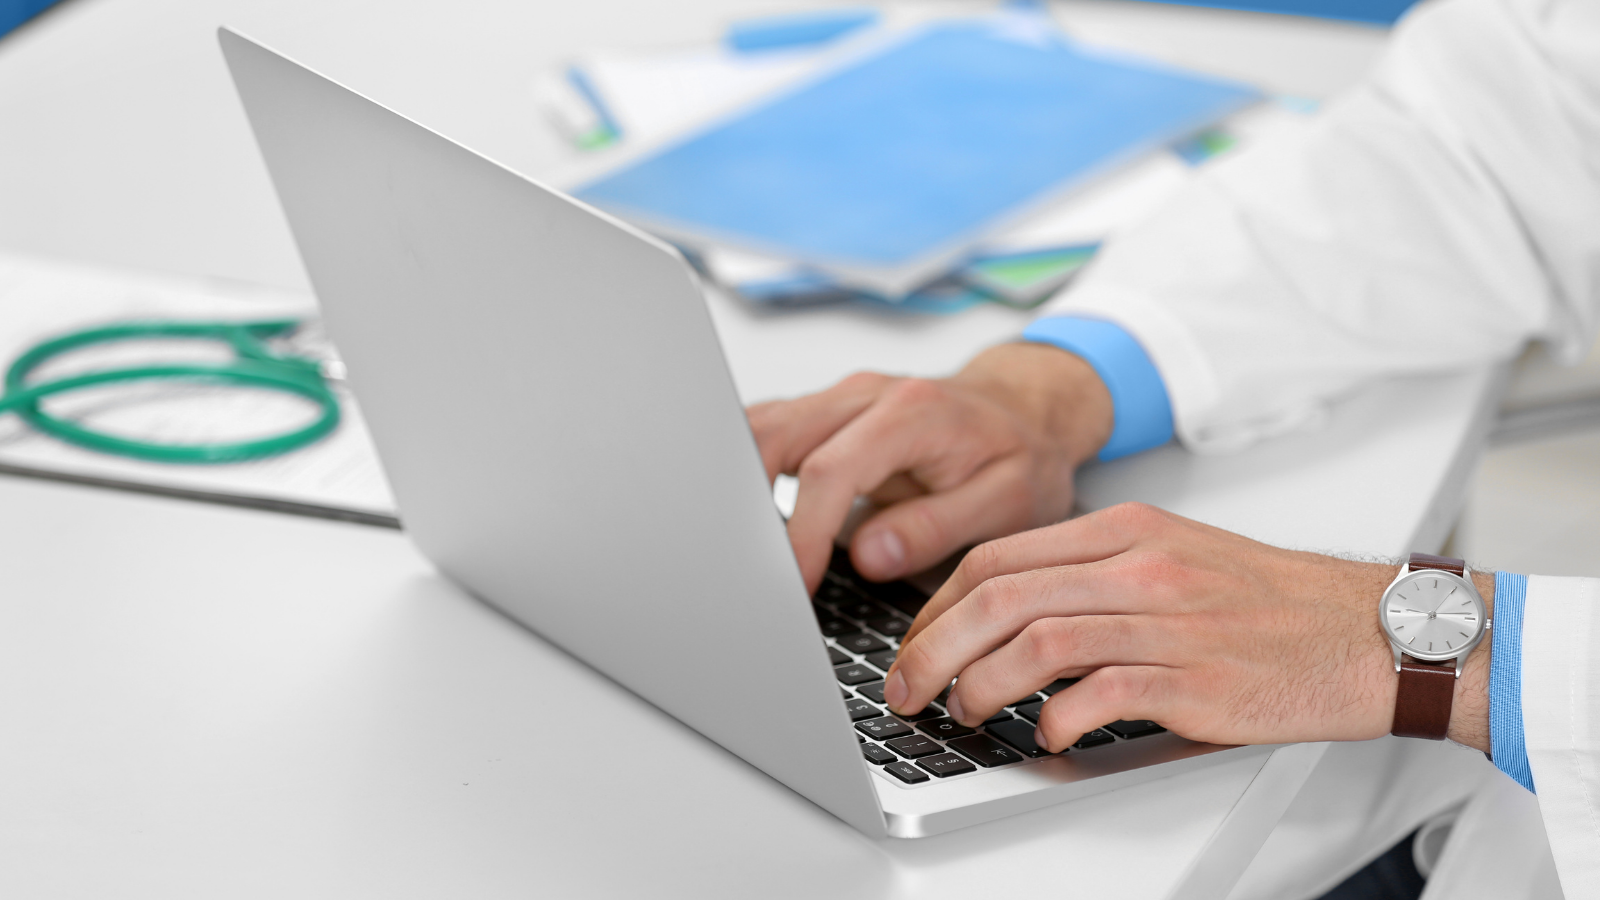 Physician typing on a computer